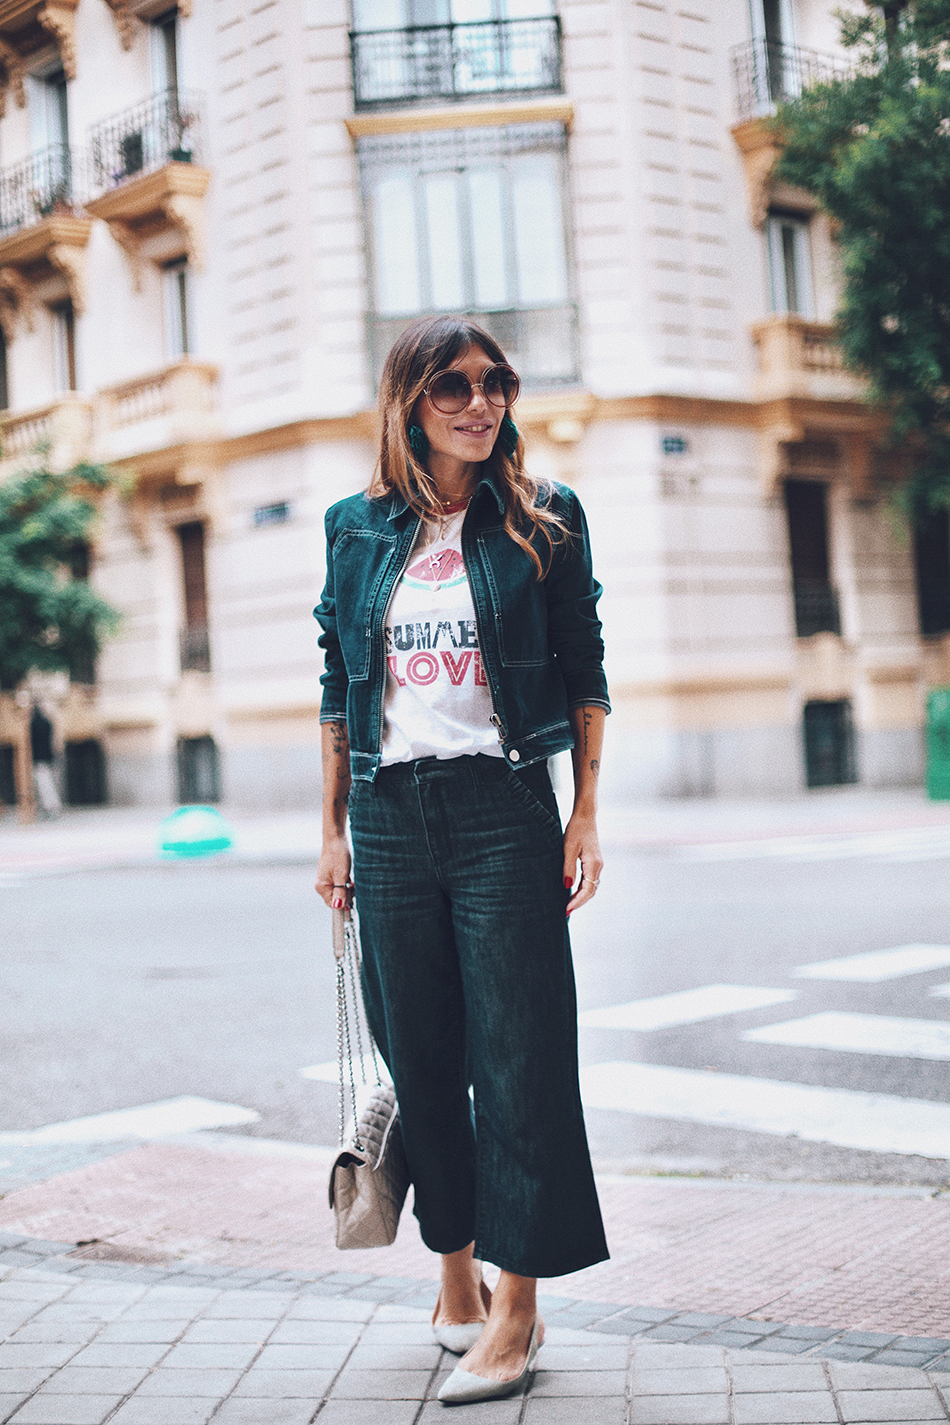 Bárbara Crespo street style. Denim jacket / Cazadora vaquera: Kiabi. T-Shirt / Camiseta: Tees and Dreams. Pants / Pantalones: Kiabi. Sun Glasses / Gafas de sol: Chloé. Earrings / Pendientes: Mango. Bag / Bolso: Michael Kors.